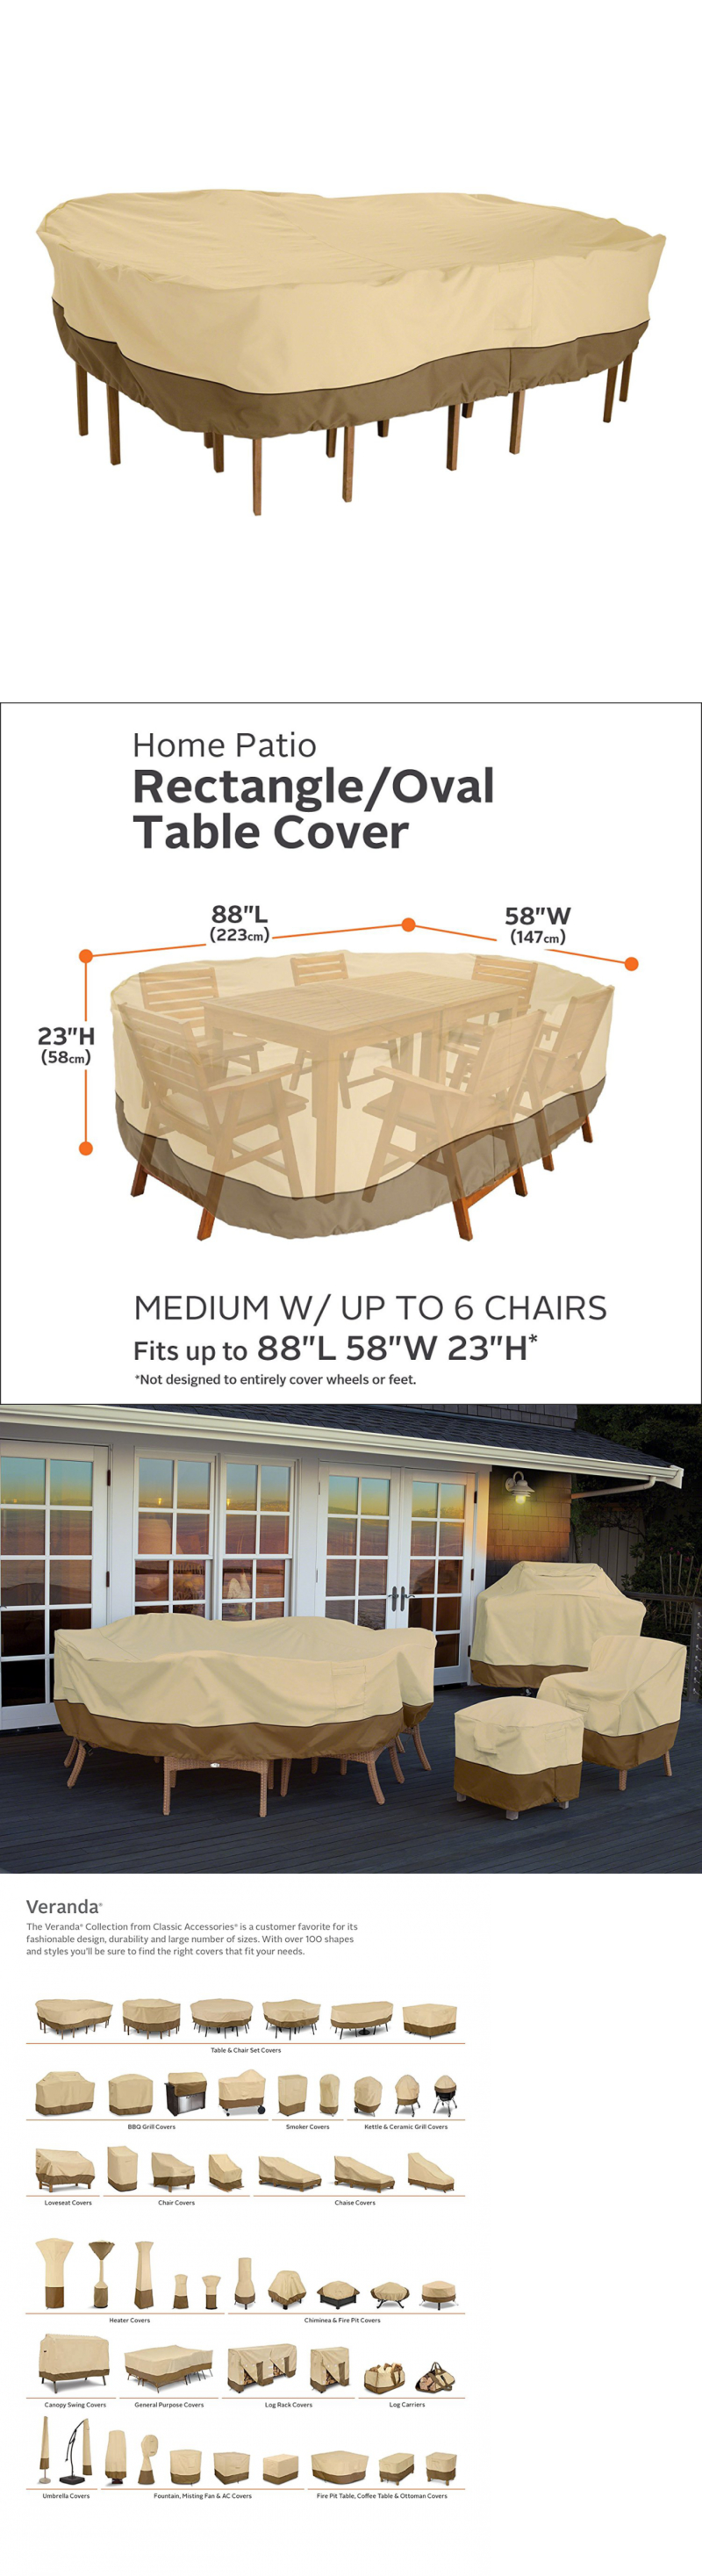 Outdoor Furniture Covers 177031: Classic Accessories Veranda Rectangular Oval  Patio Table And Chair Set Cover